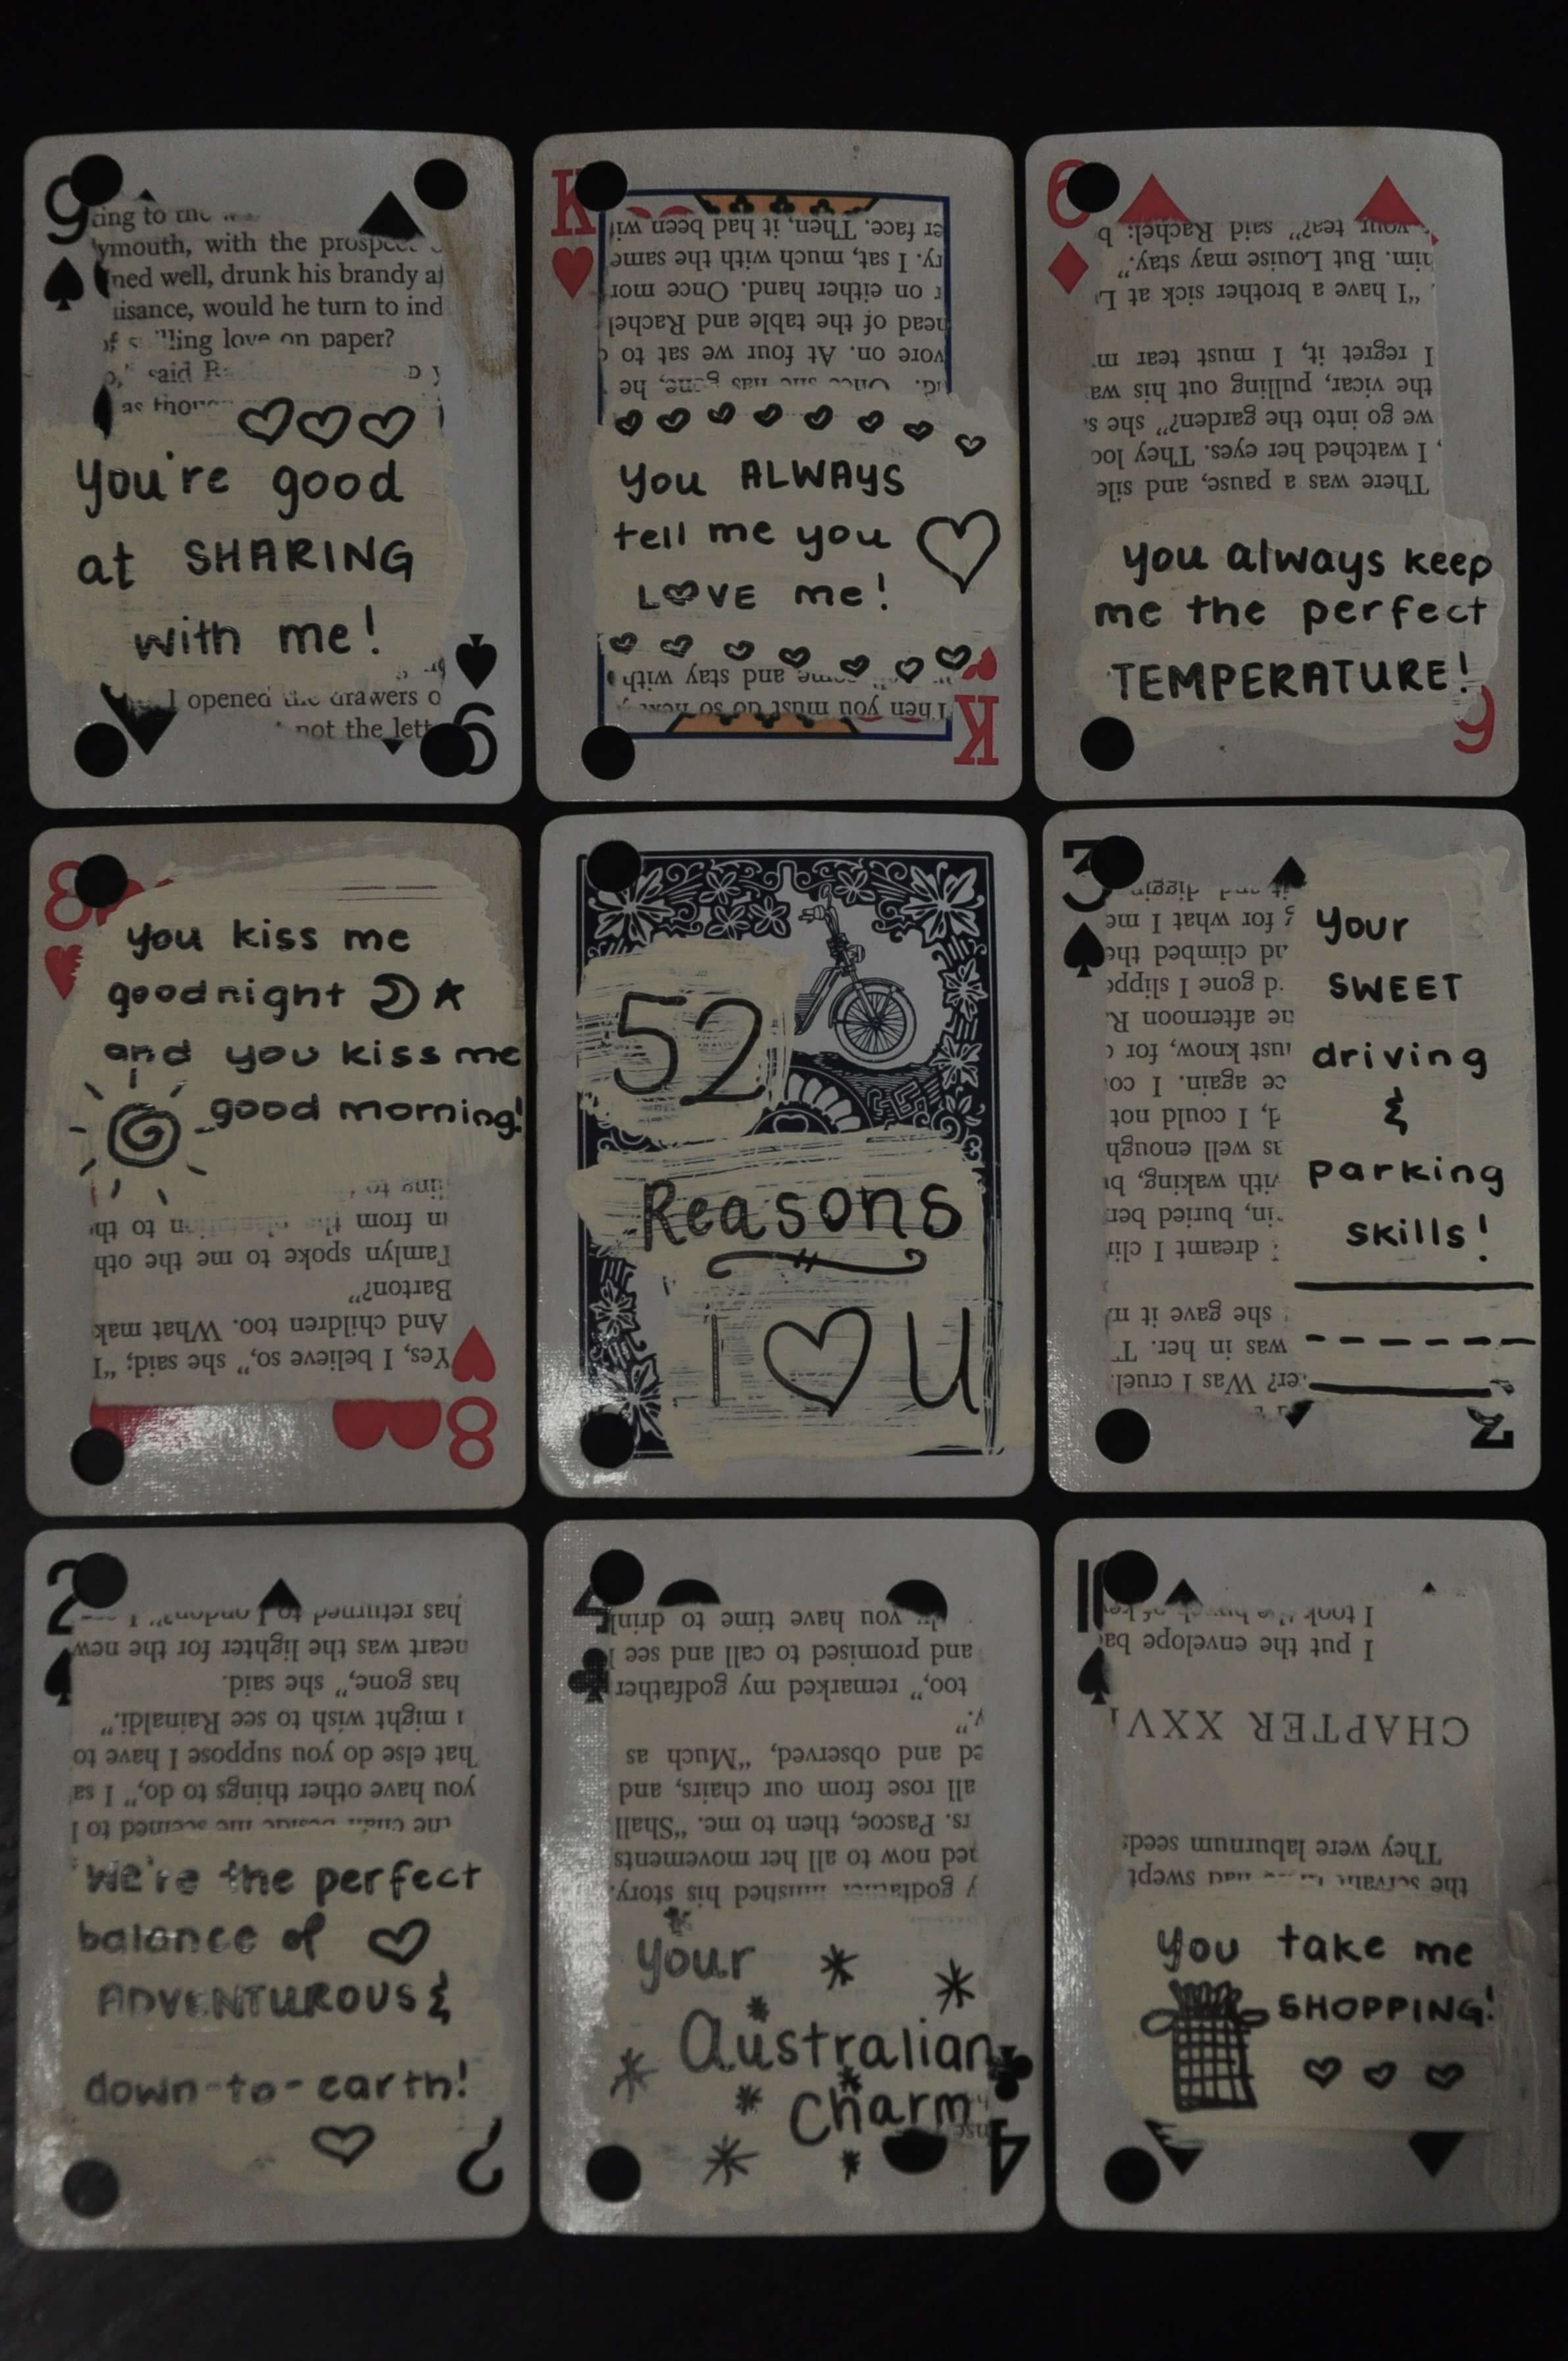 Pinjoanna Keysa On Free Tamplate   Reasons I Love You For 52 Reasons Why I Love You Cards Templates